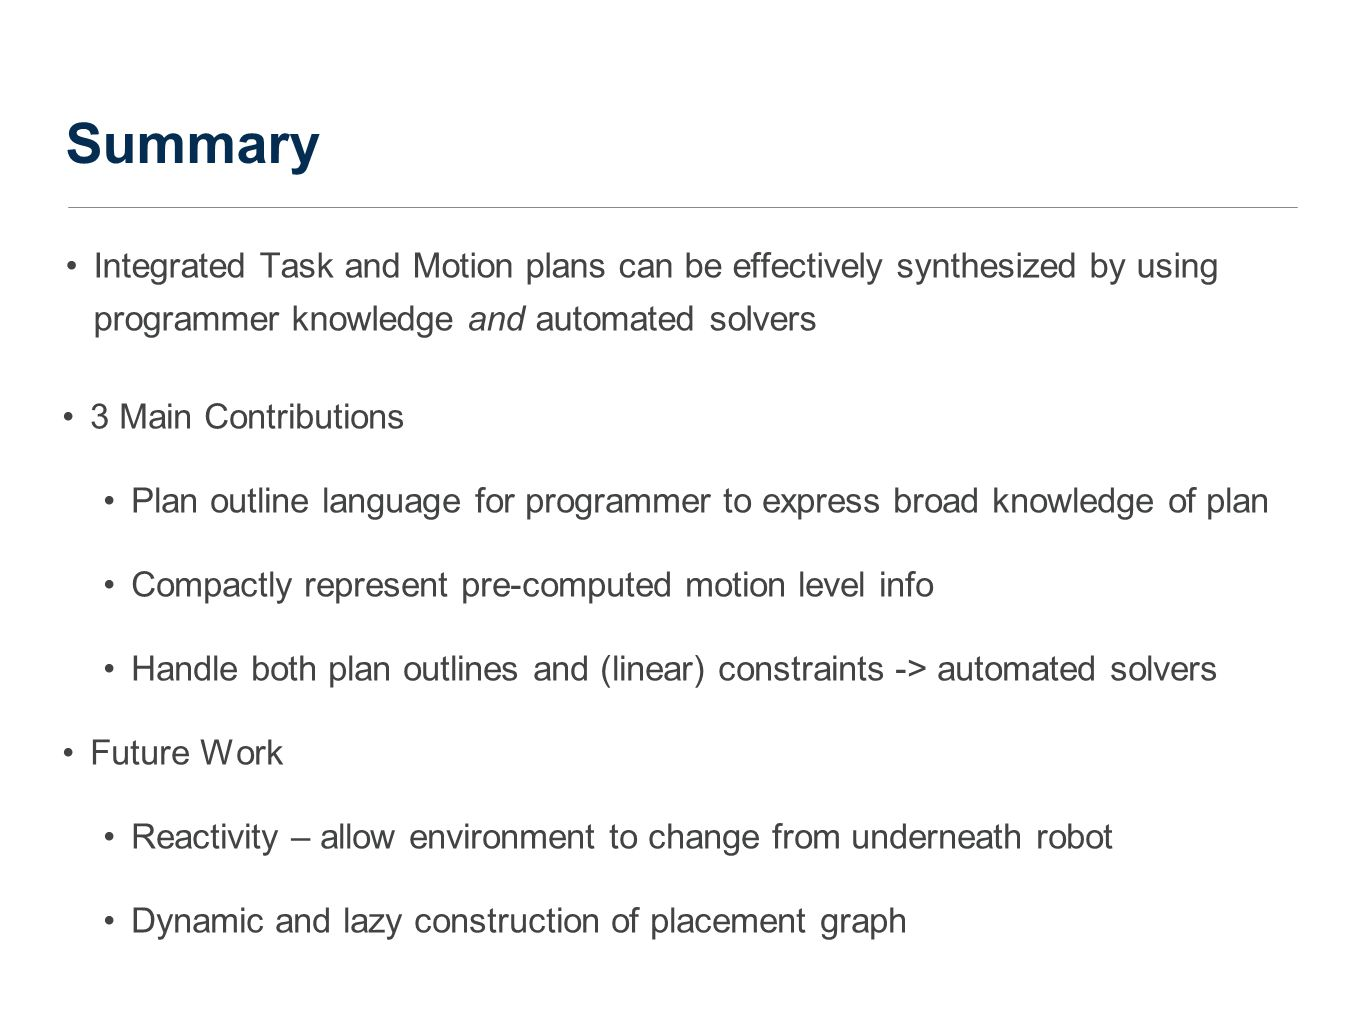 Summary Integrated Task and Motion plans can be effectively synthesized by using programmer knowledge and automated solvers 3 Main Contributions Plan outline language for programmer to express broad knowledge of plan Compactly represent pre-computed motion level info Handle both plan outlines and (linear) constraints -> automated solvers Future Work Reactivity – allow environment to change from underneath robot Dynamic and lazy construction of placement graph